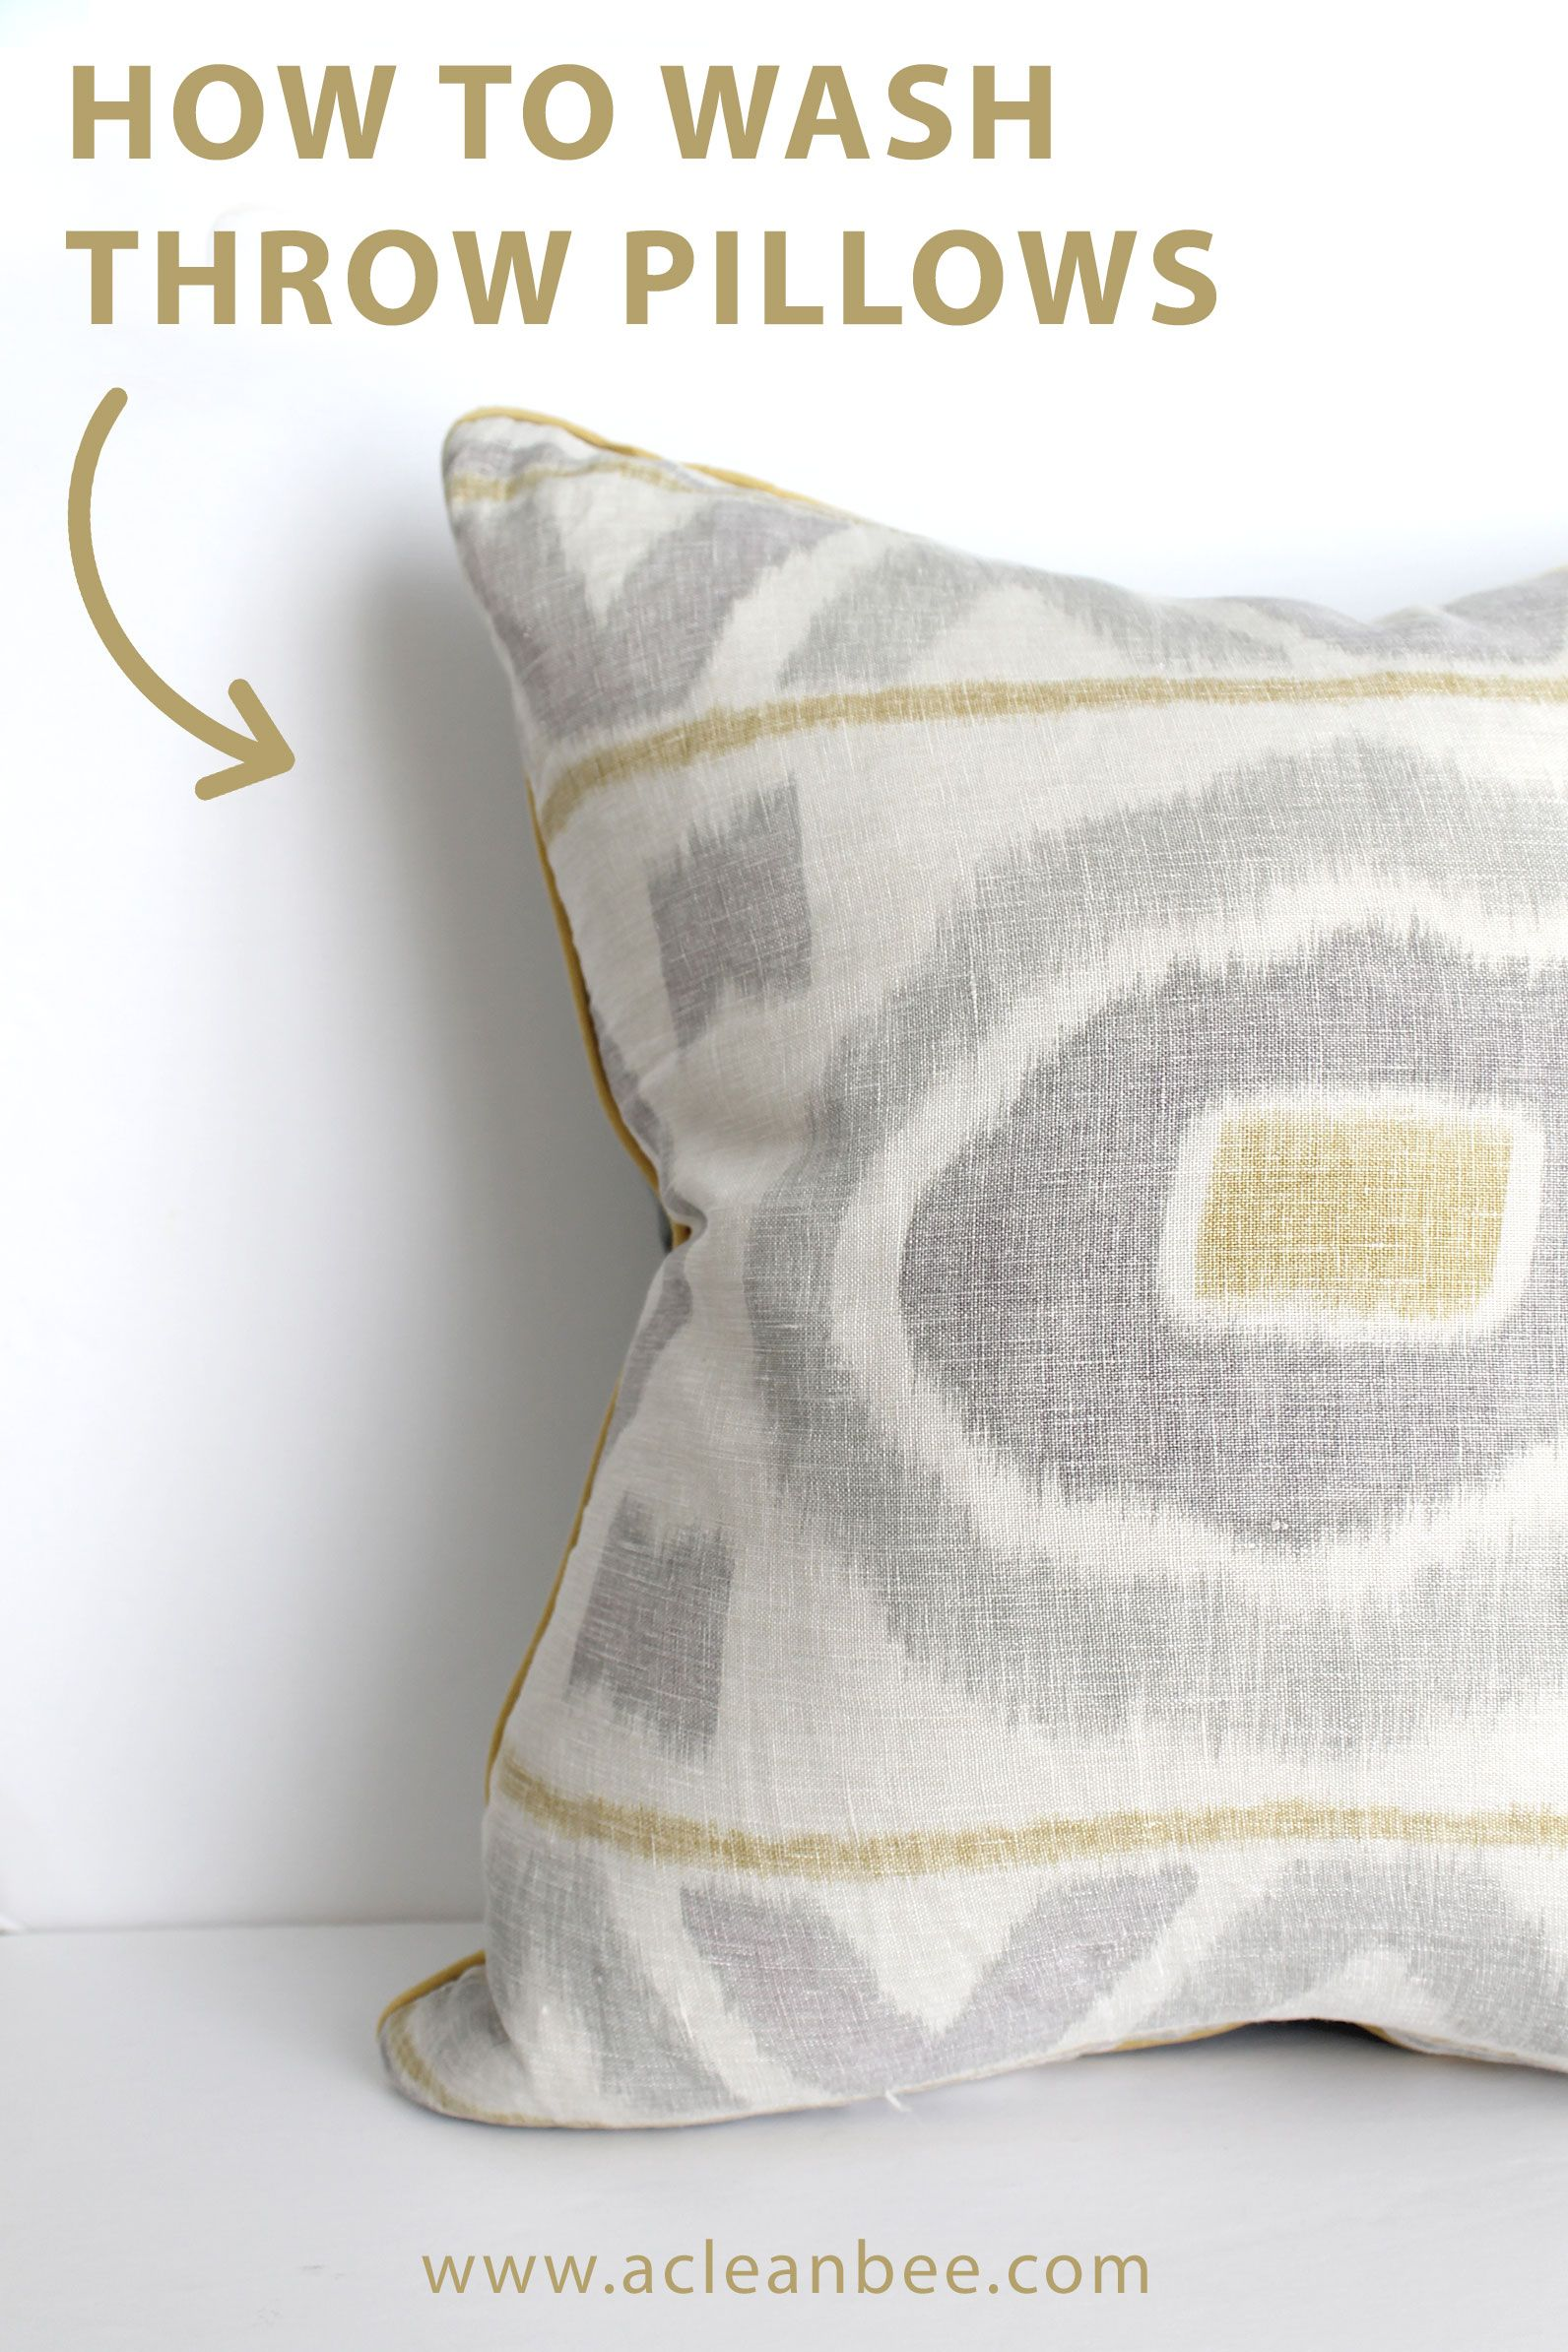 How To Clean Throw Pillows Throw Pillows How To Wash Throw